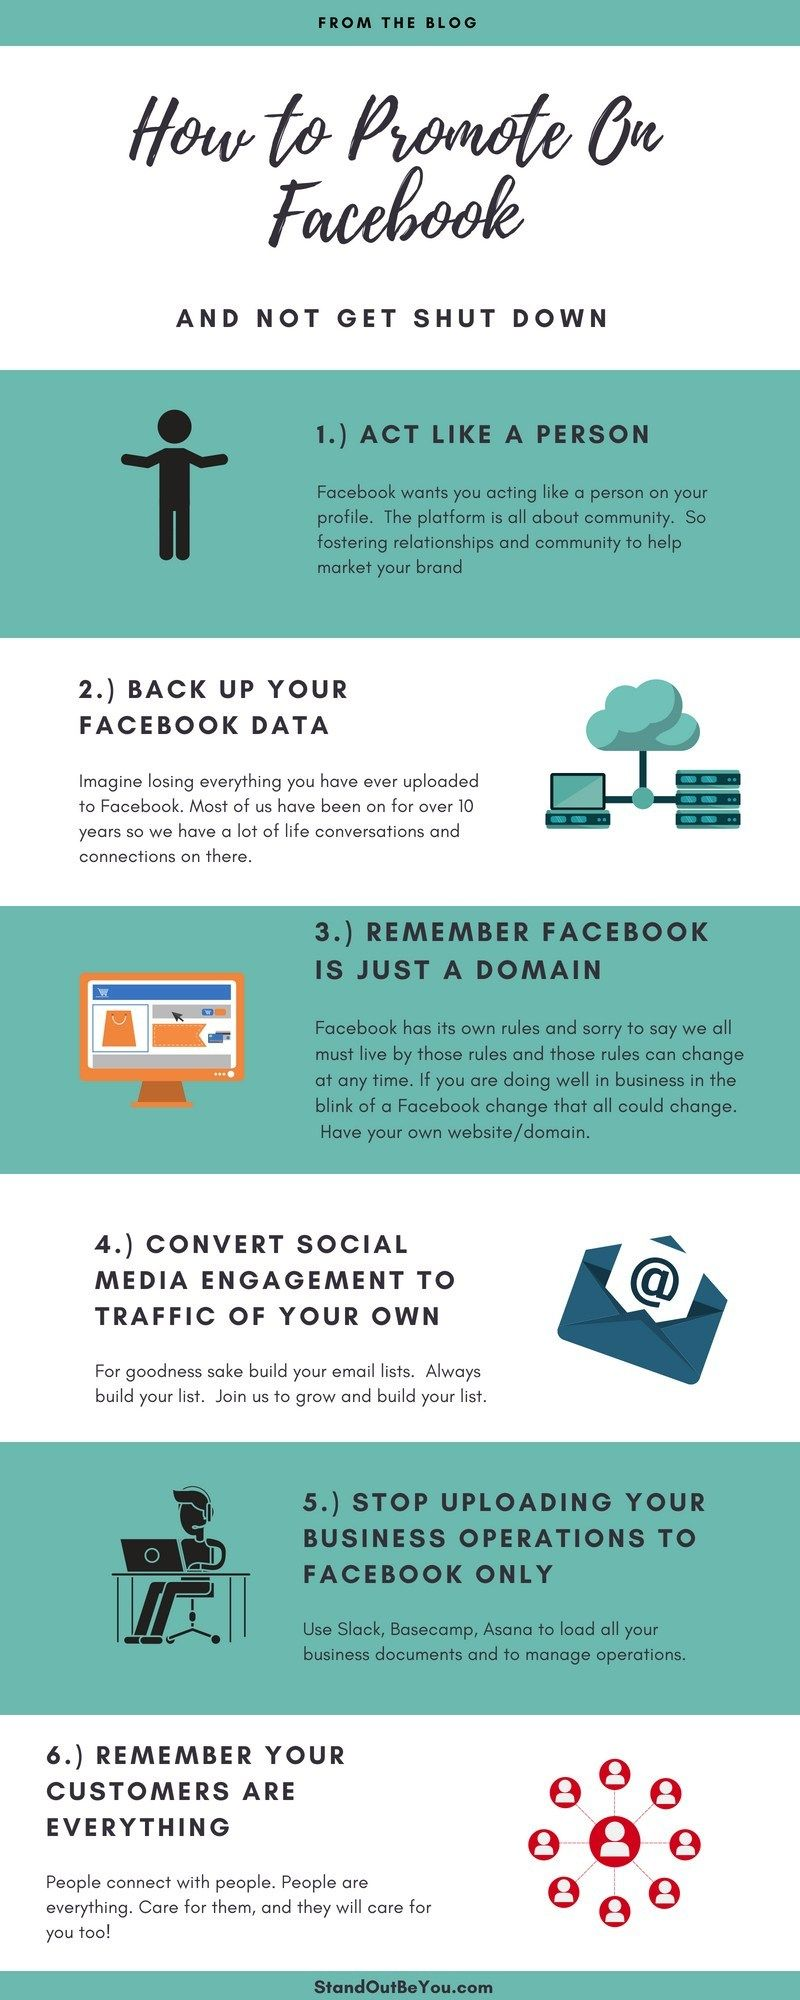 How To Promote A Business On Facebook And Not Get Shutdown Facebook Marketing Strategy Facebook Business Facebook Marketing